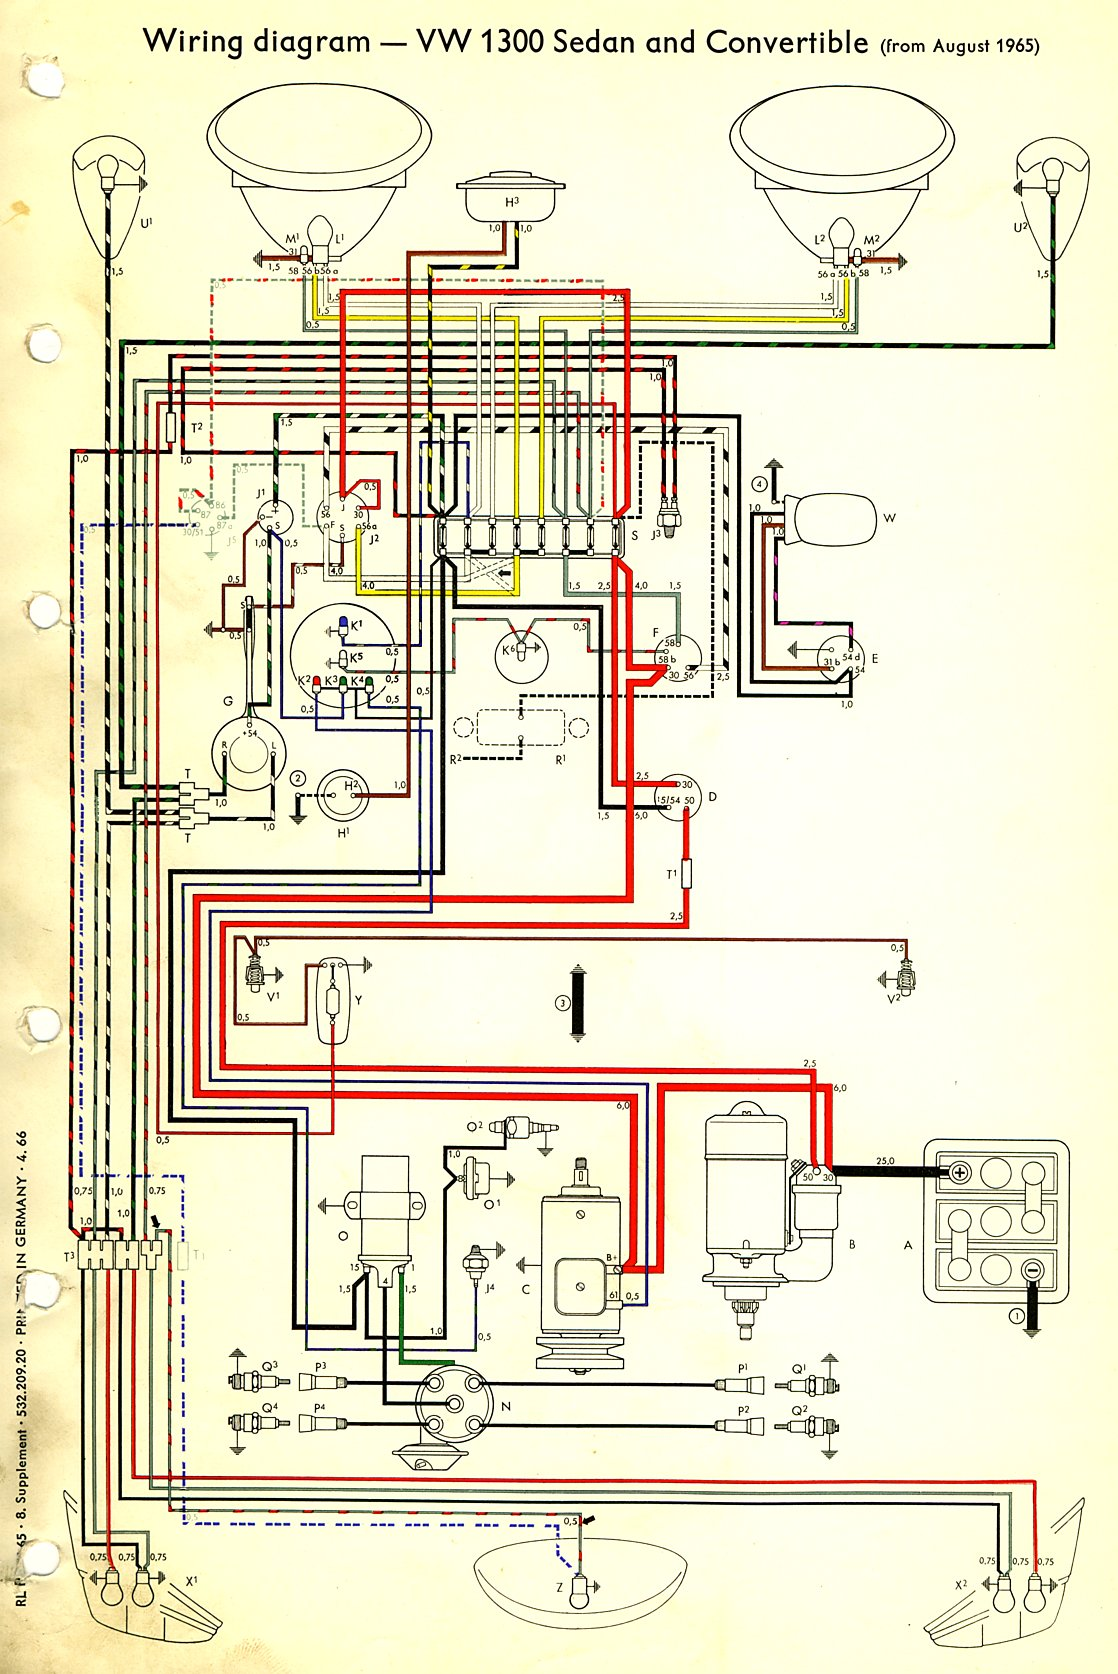 2000 vw beetle headlight wiring diagram hood ansul system 1974 bus get free image about